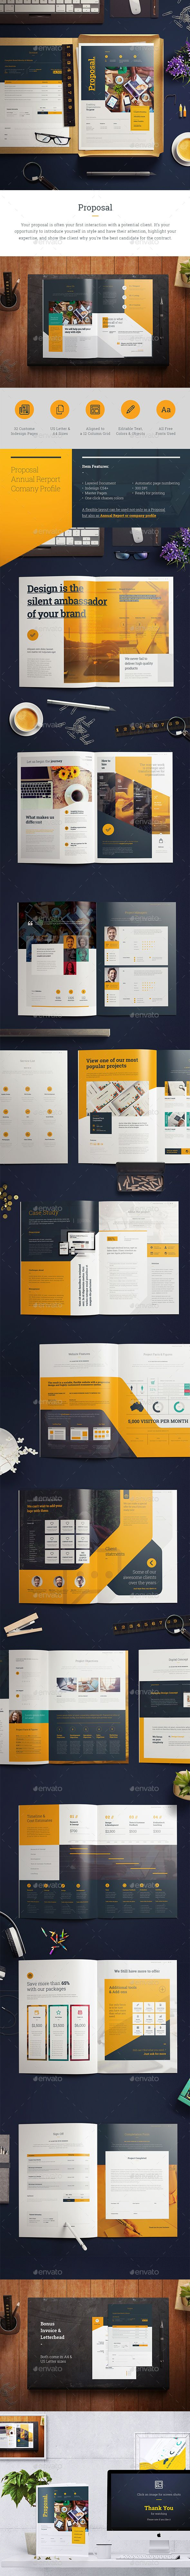 Proposal — InDesign INDD #brand #informational • Download ➝ https://graphicriver.net/item/proposal/20218503?ref=pxcr